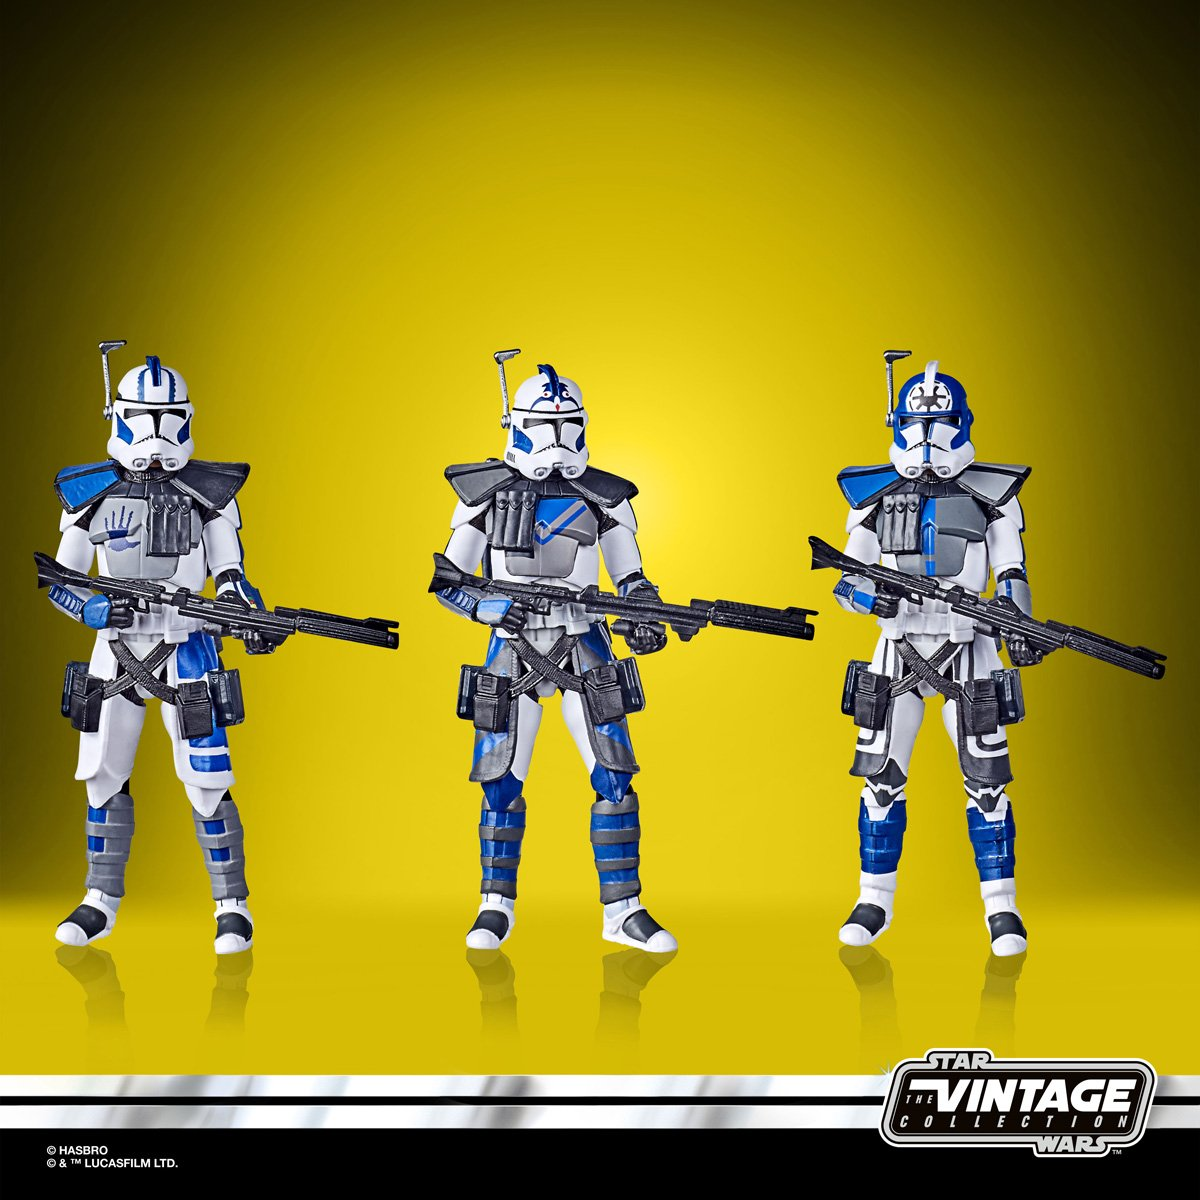 star-wars-the-vintage-collection-star-wars-the-clone-wars-501st-legion-arc-troopers-figure-3-pack-oop-1